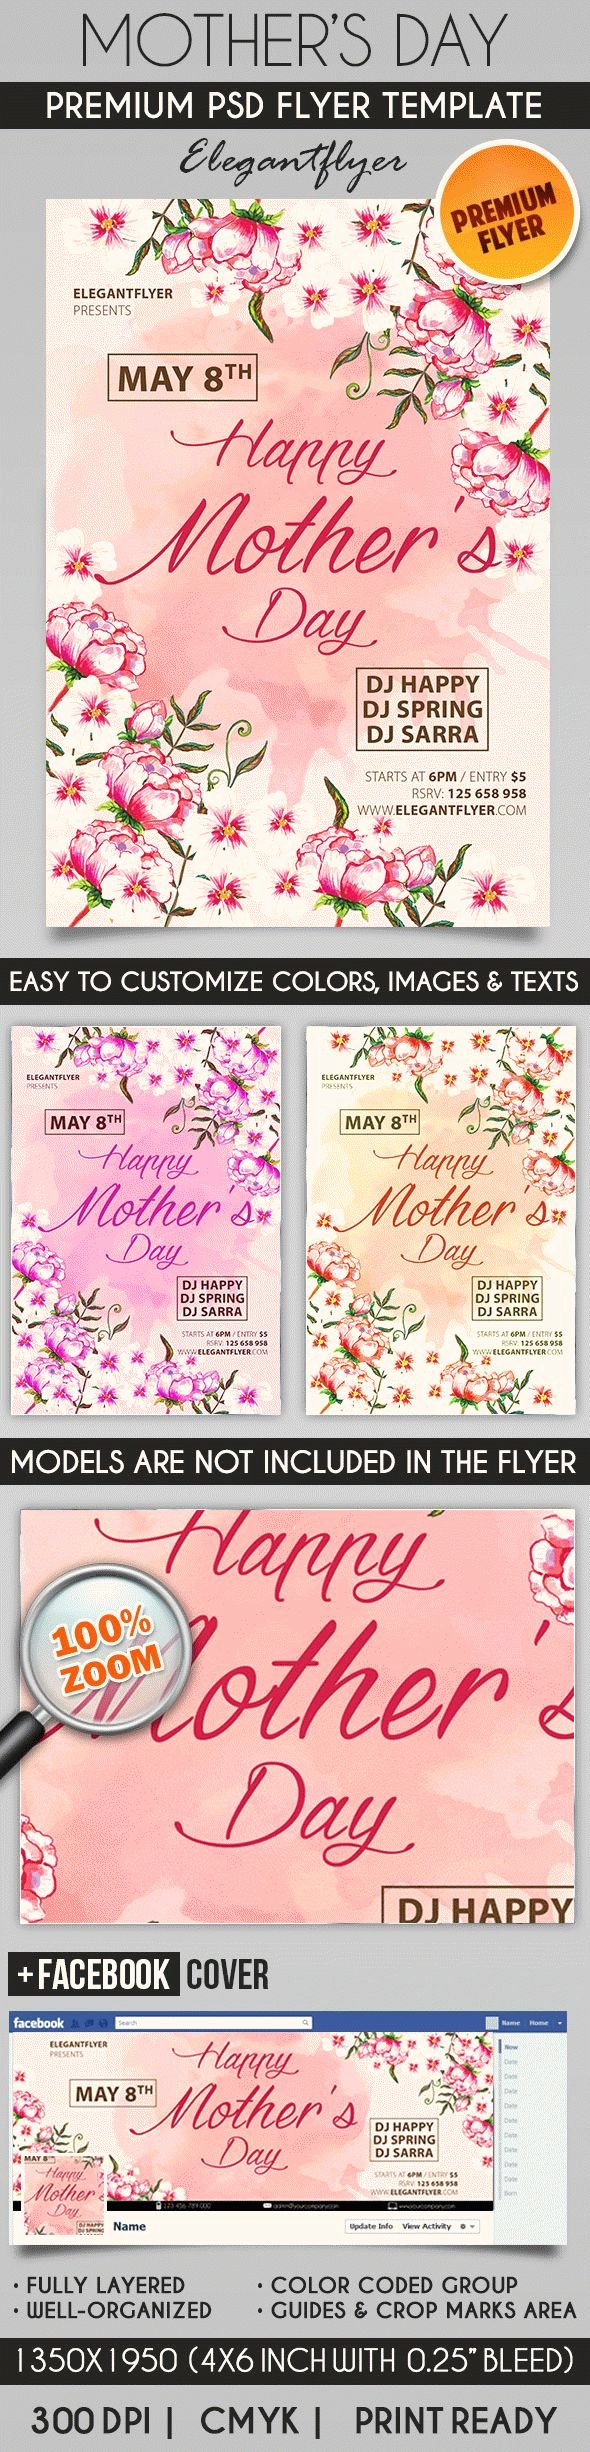 Mother Day Flyer Template Free New Flowers for Mothers Day Psd Poster – by Elegantflyer